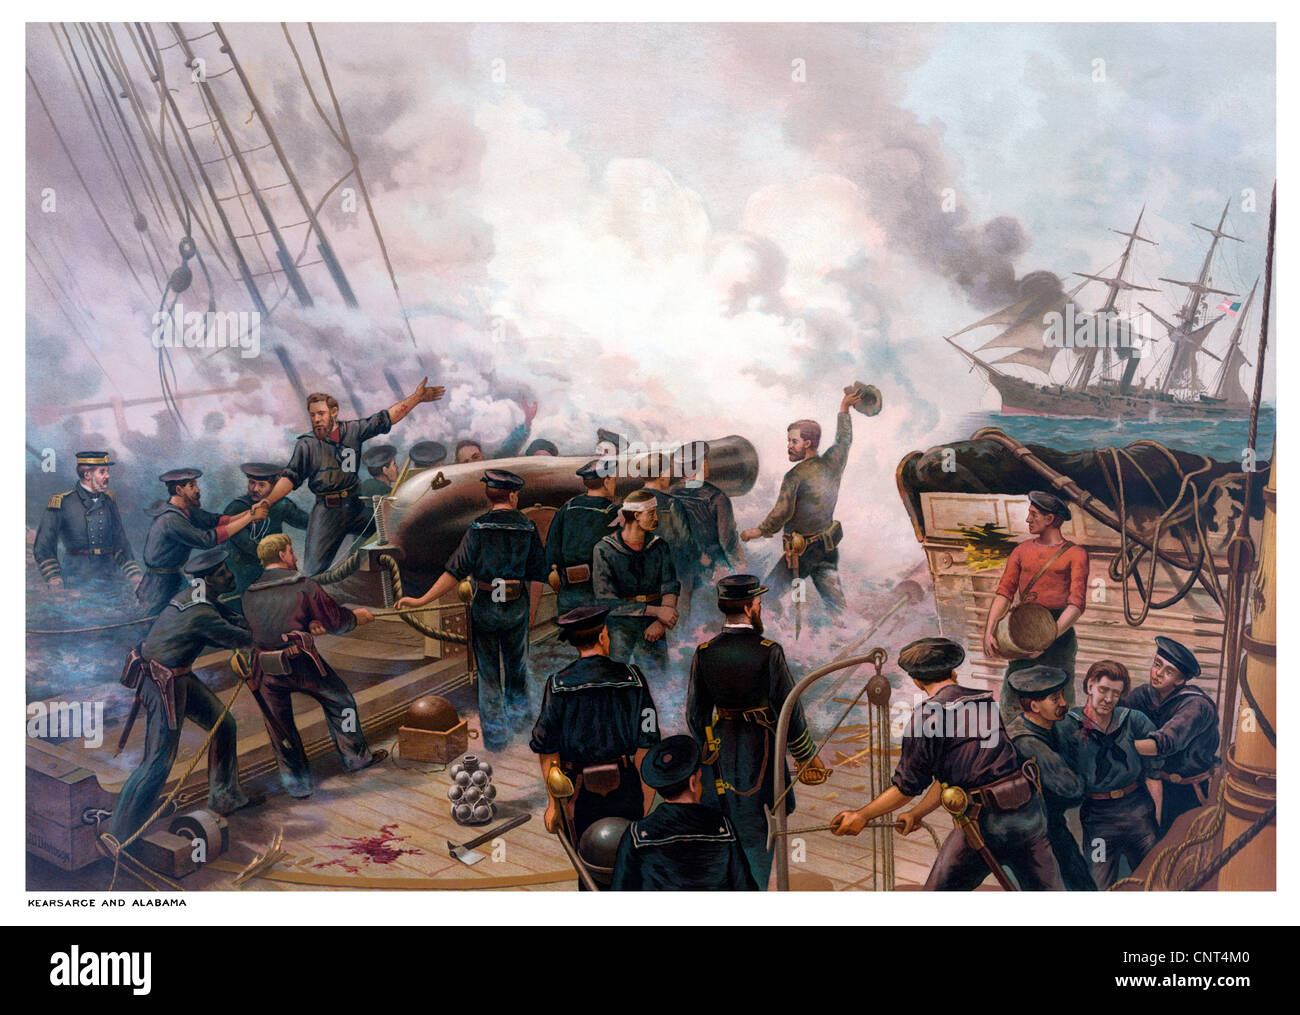 Vintage American Civil War print of The Battle of Cherbourg. - Stock Image